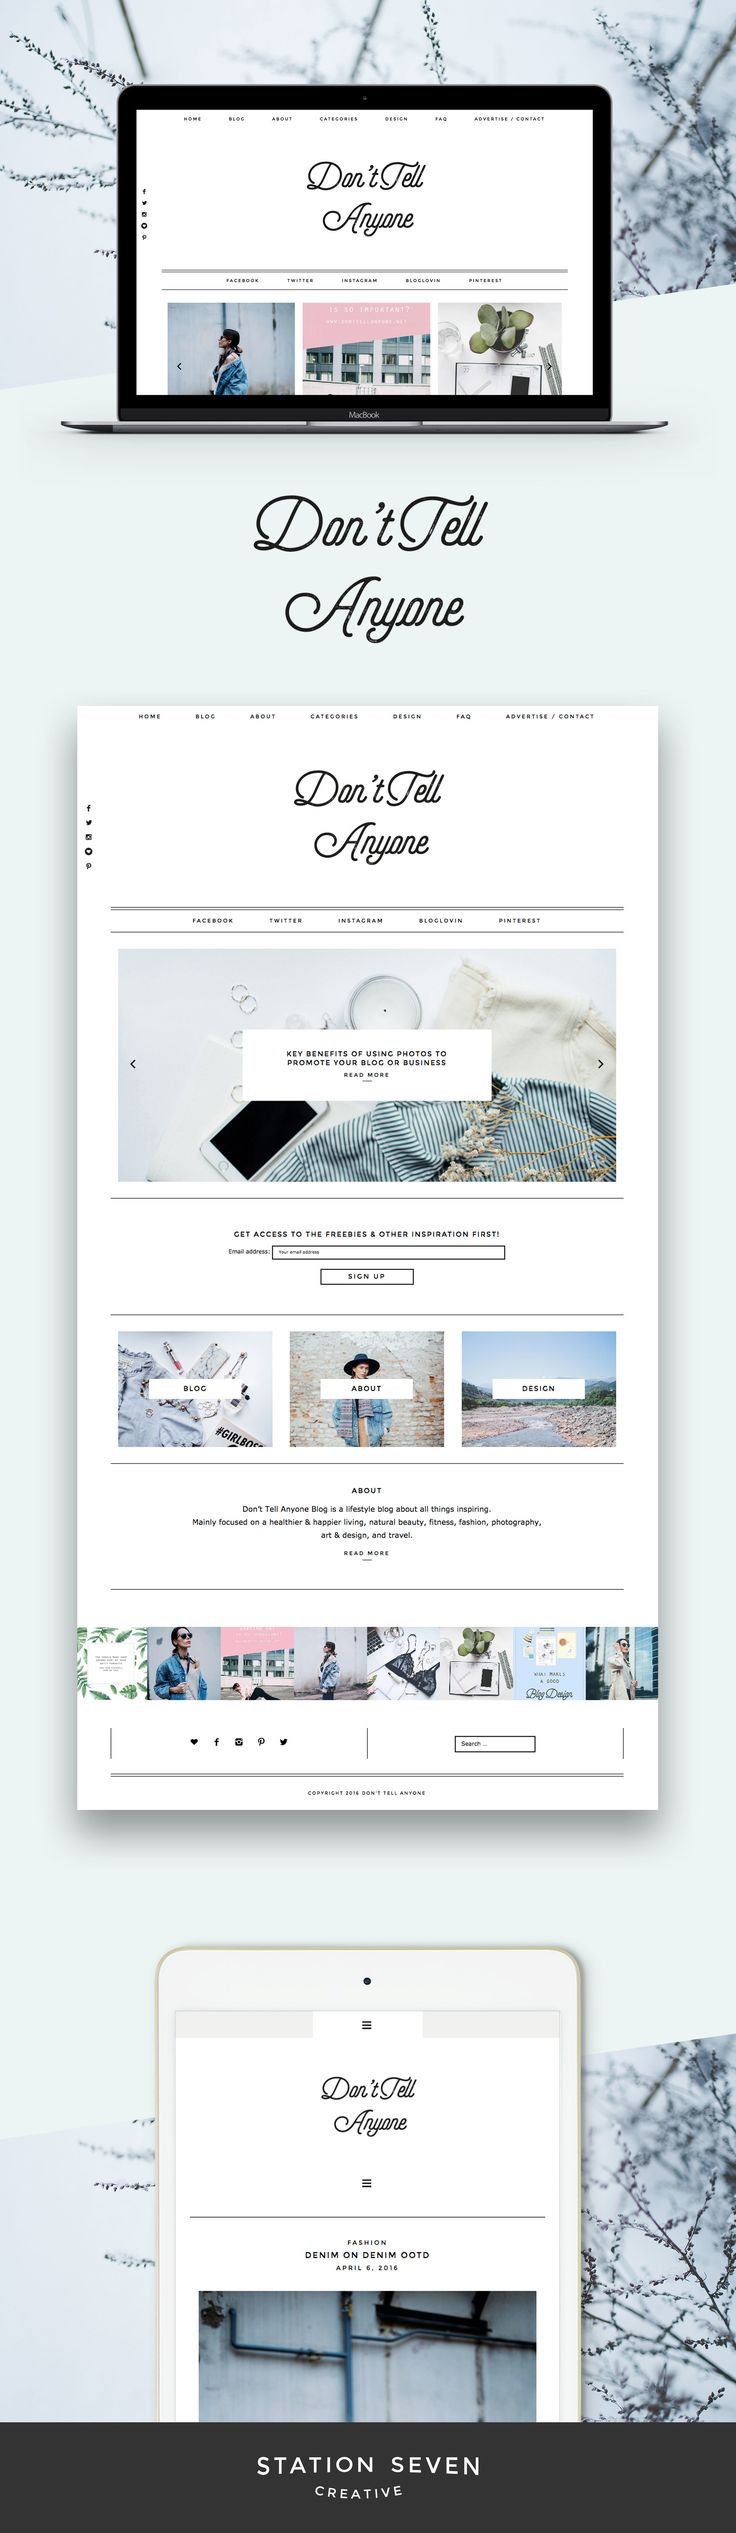 Modern yet minimal blog by Don't Tell Anyone on Station Seven's Parker WordPress theme.